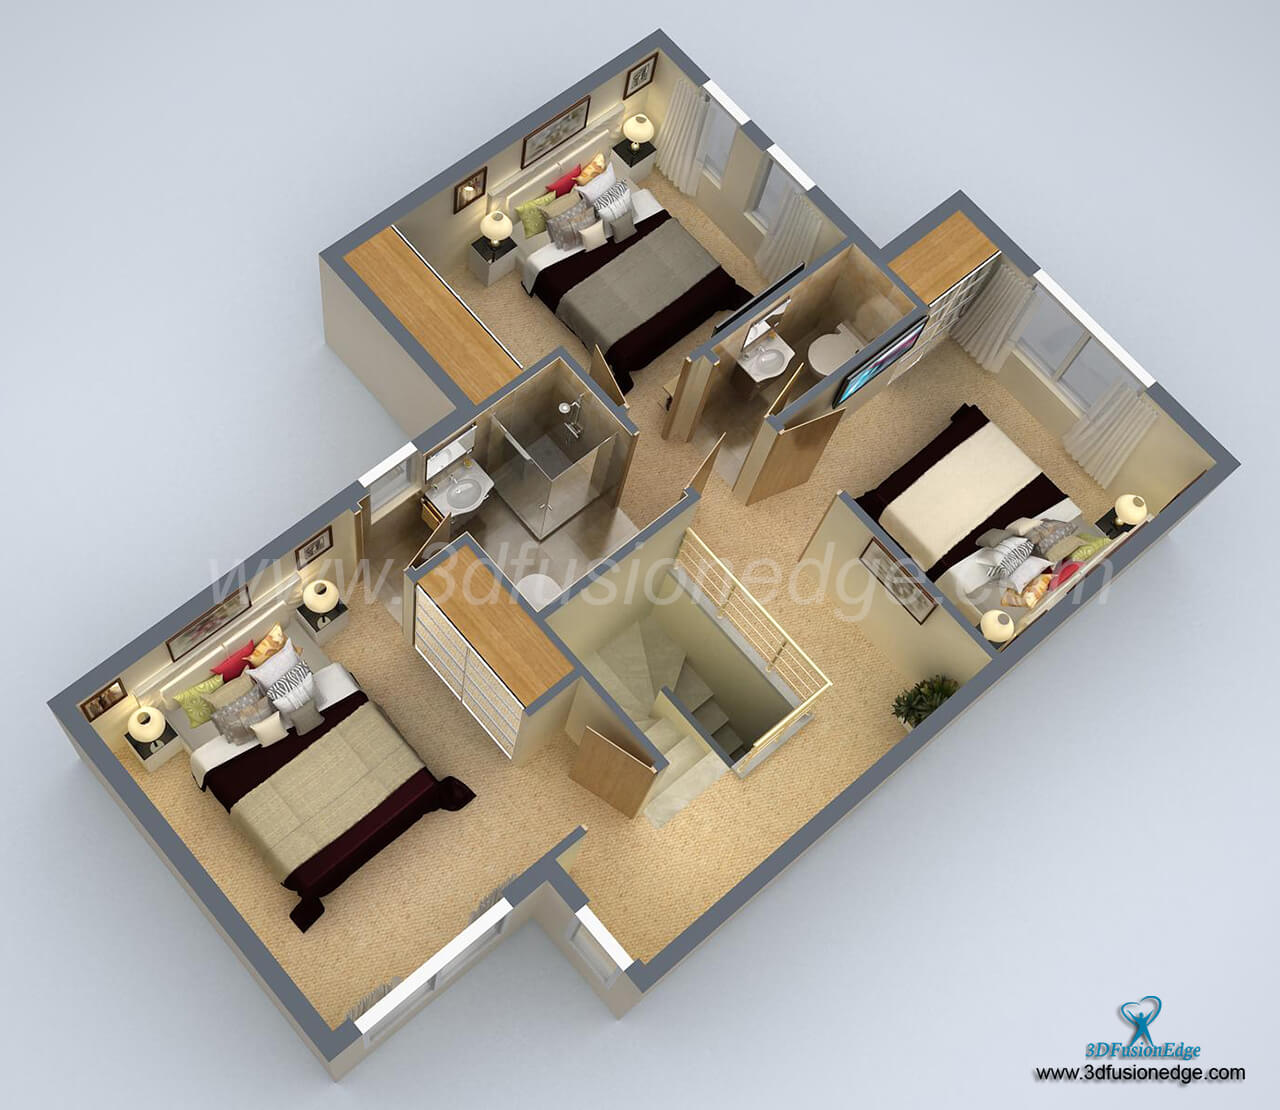 Small House 3D Floor Plan Rendering | ARTCONNECT on simple house plans, 1 bedroom house plans, small ranch house plans, small house living, small house plans with porches, small house interiors, small house plans concrete, small bungalow house plans, small prefab houses, small houses on wheels, small house plans under 1000 sq ft, tire houses plans, cottage house plans, small house design, unique small house plans, small two bedroom house plans, tiny house plans, small homes and cottages, best small house plans,